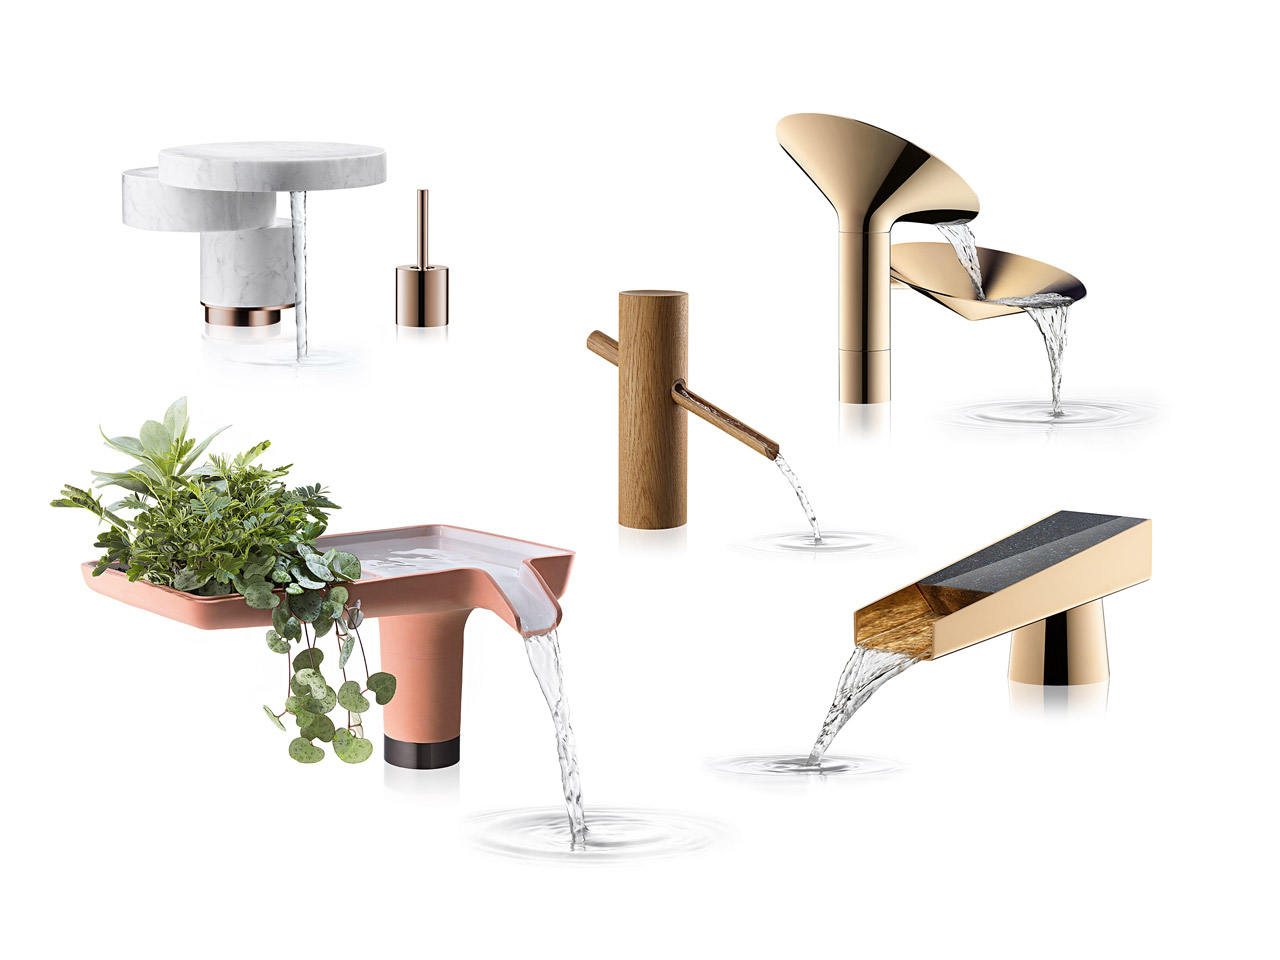 Designers Reimagine Faucets for Axor WaterDream 2016